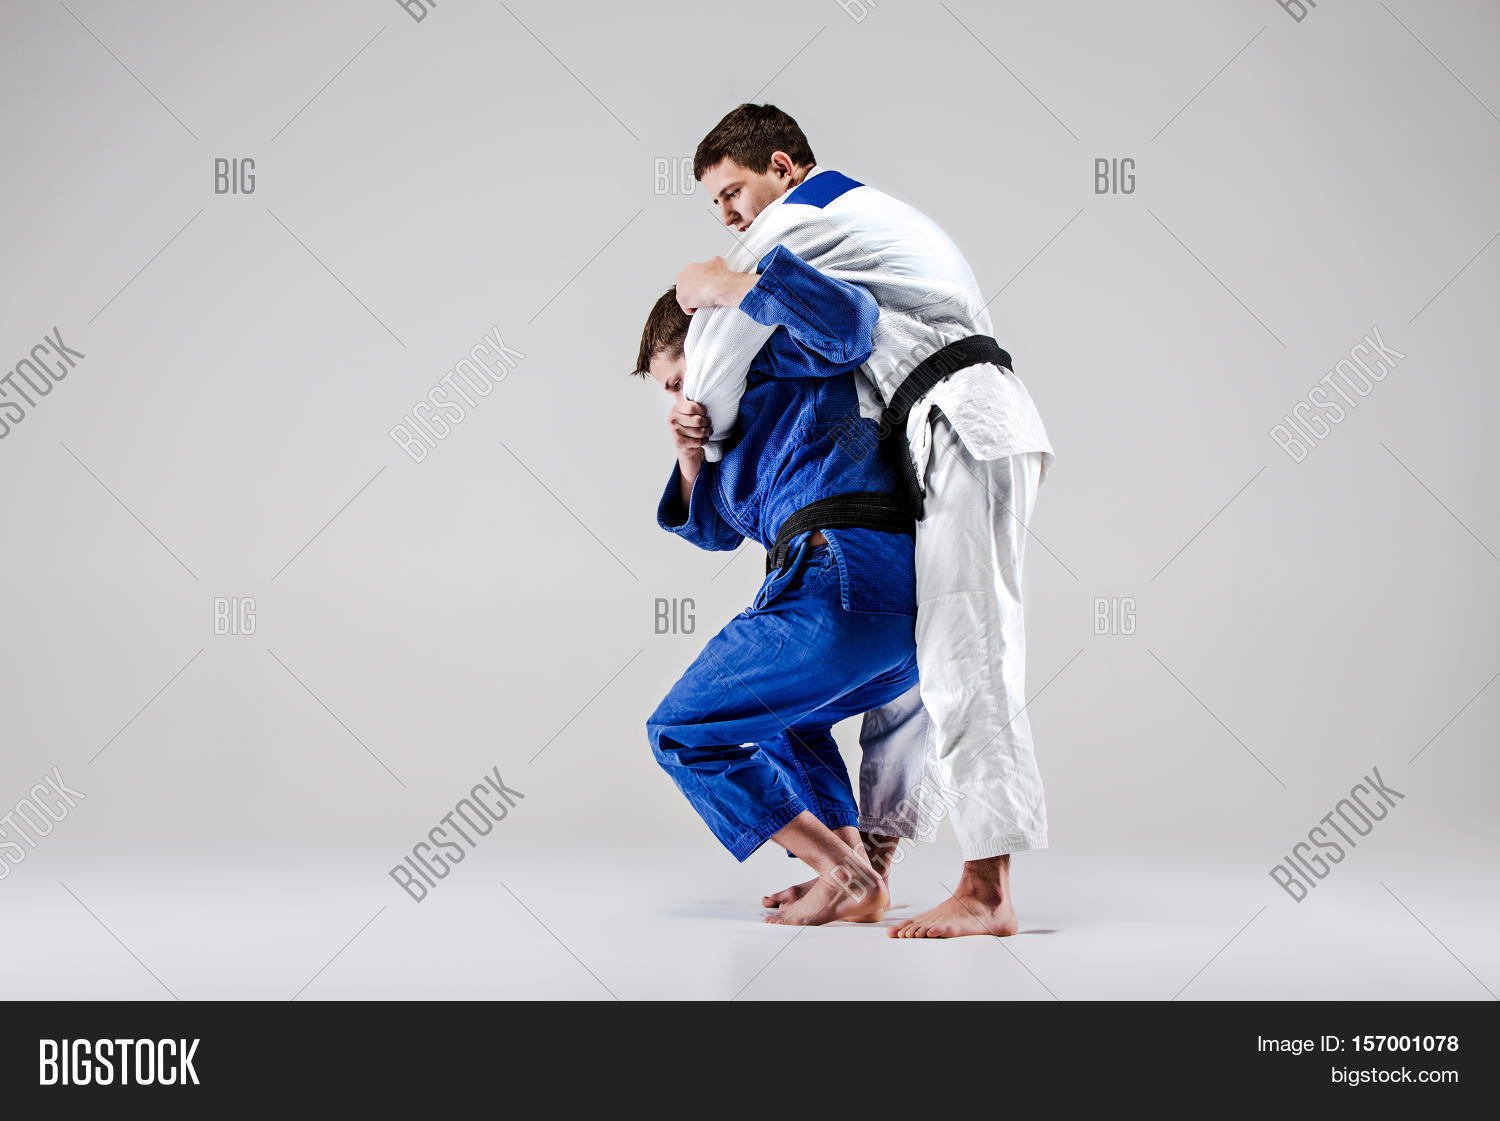 judo,martial,two,kimono,arts,fighting,competition,male,training,men,sports,adult,karate,man,people,length,full,caucasian,combat,indoors,judokas,fighters,oppositions,active,athlete,exercise,fight,fitness,gym,healthy,judogi,lifestyle,practice,skill,strength,strong,young,action,aikido,agility,bout,boxing,club,studio,gray,throw,capture